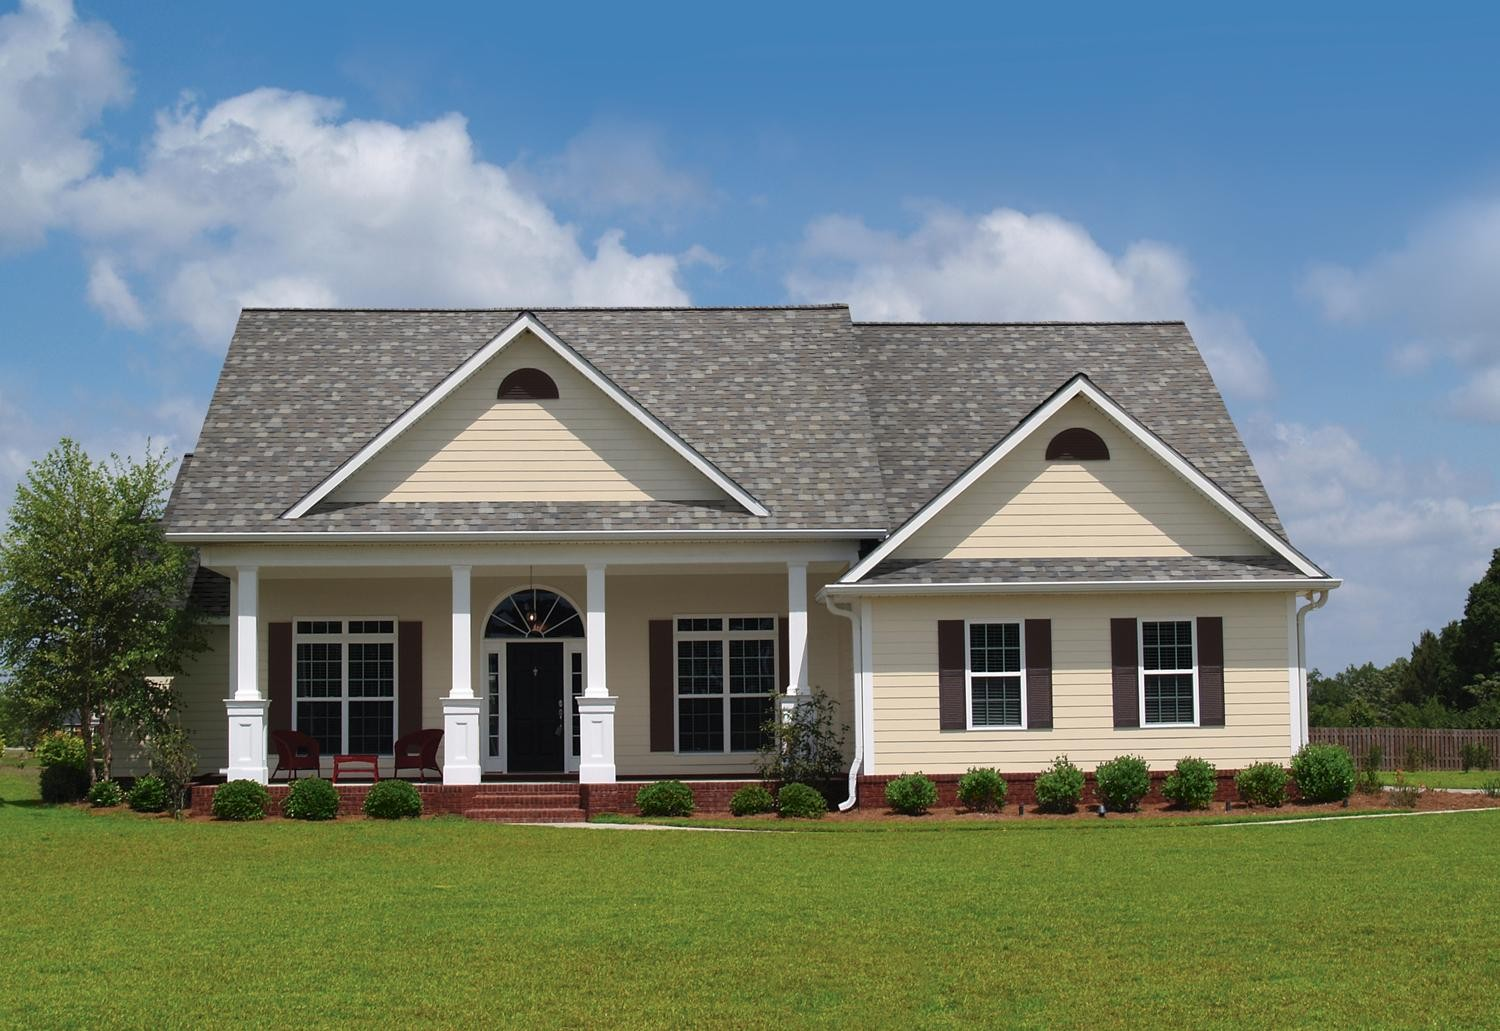 CertainTeed Roofing Introduces Patriot™— A Shingle